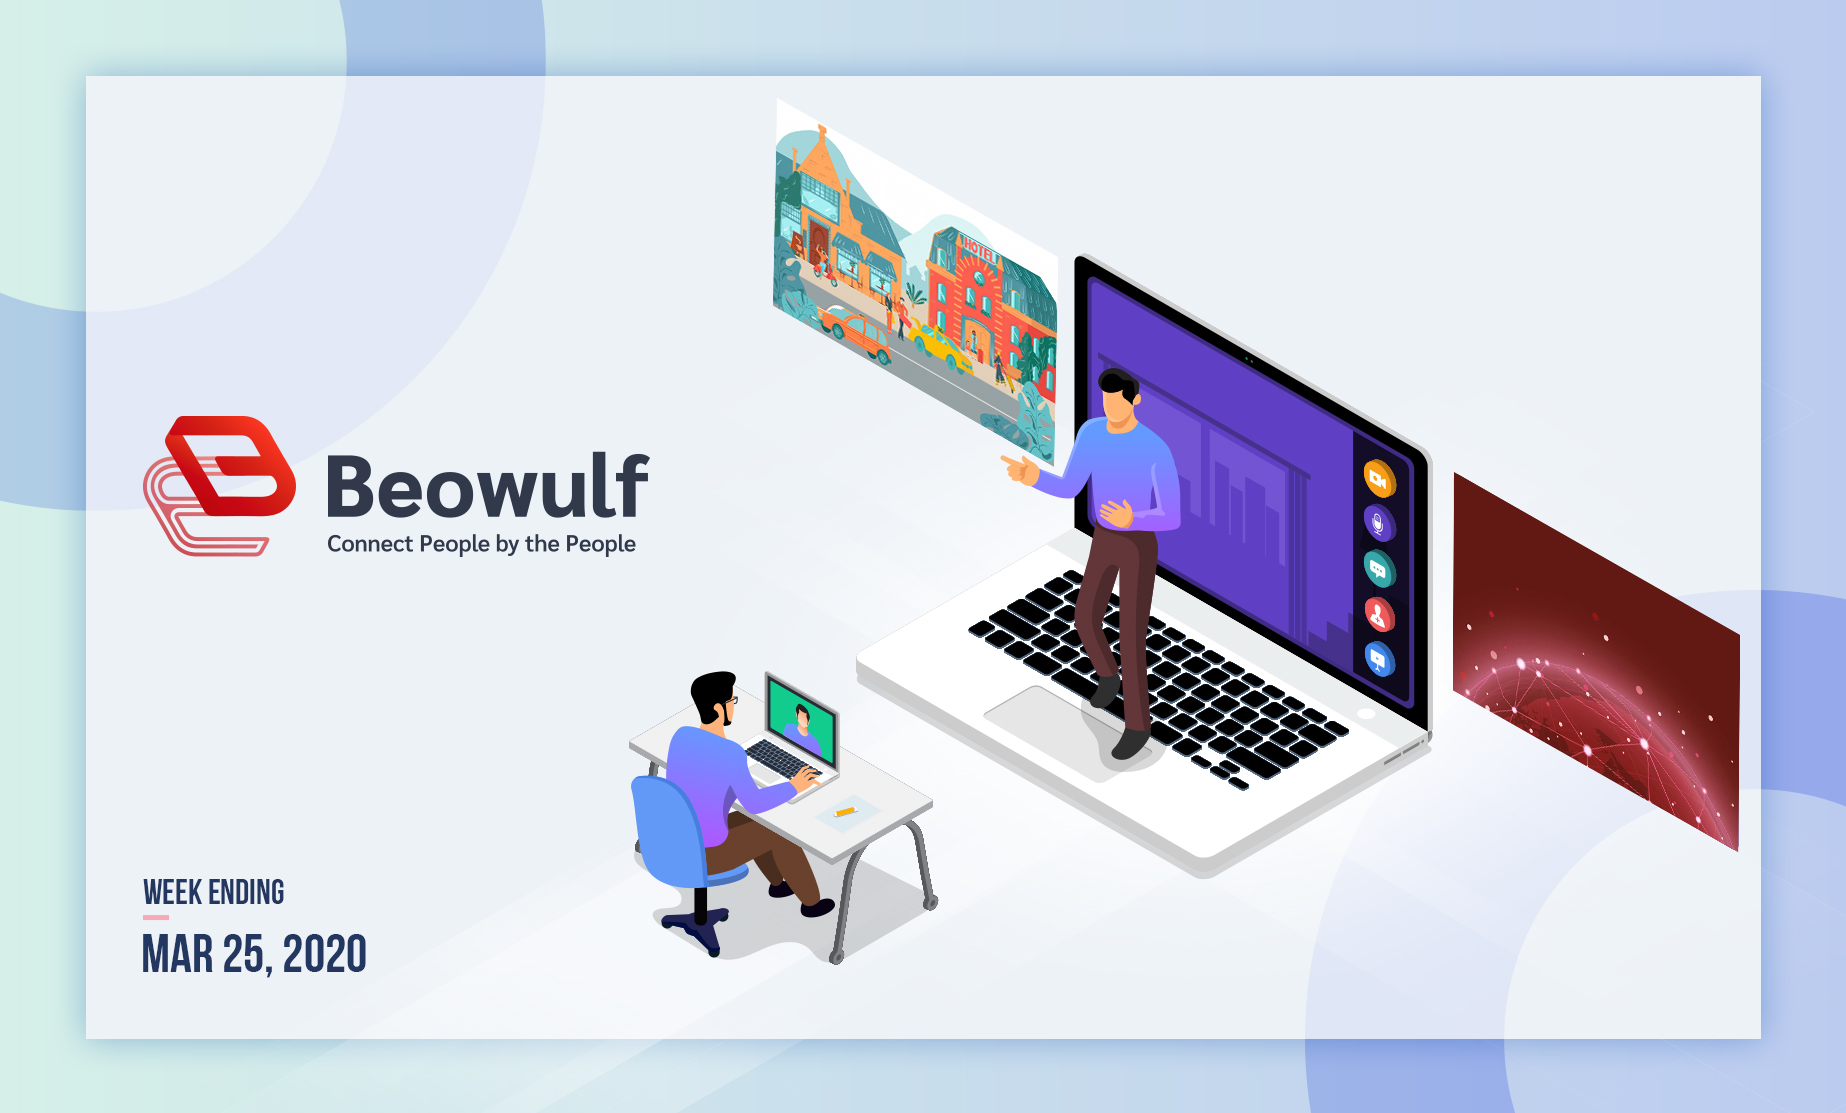 Beowulf continues to foster knowledge exchange for the academic communities via QUICKOM technology Beowulf Blockchain